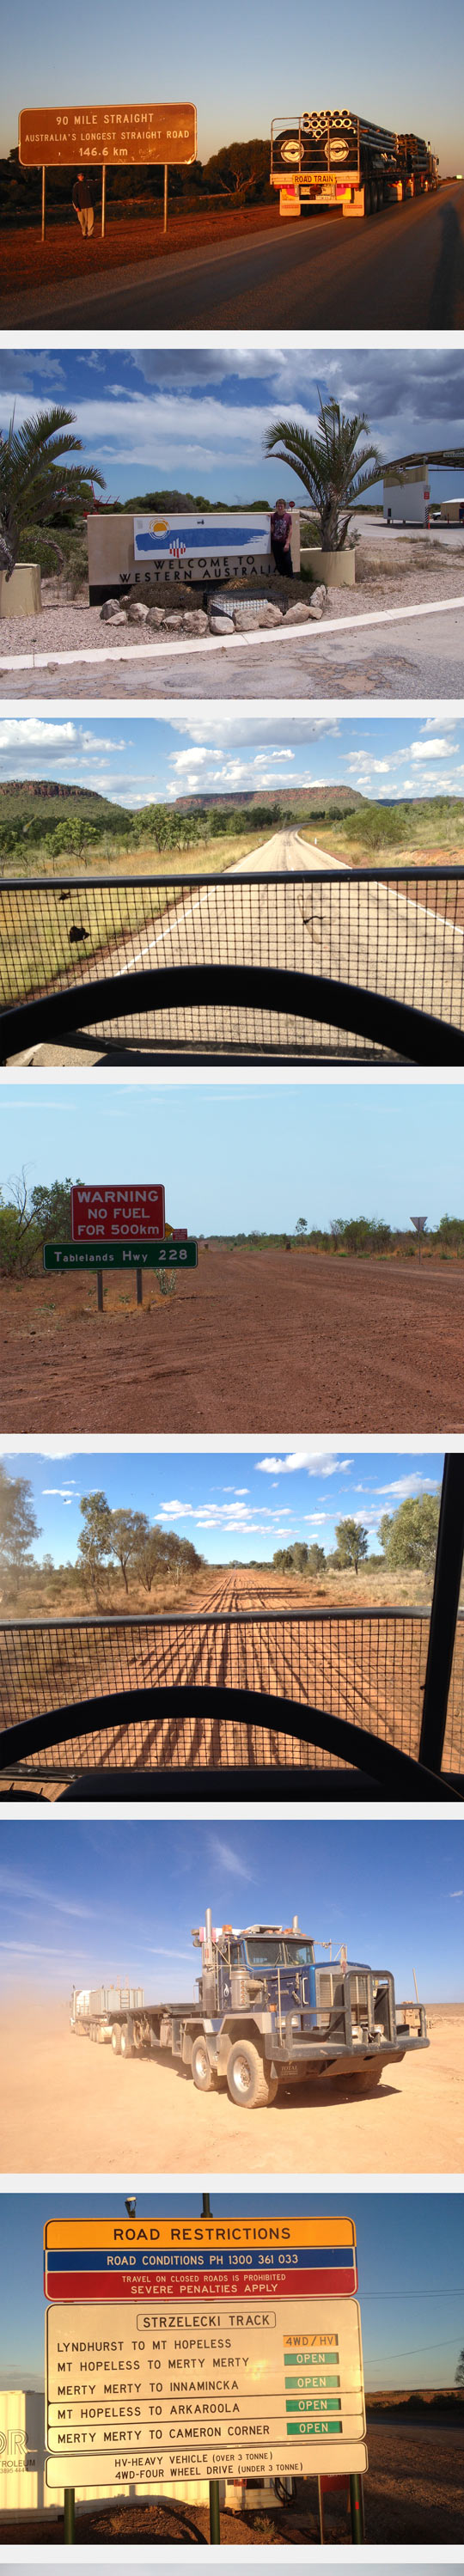 funny-signs-trucks-long-signs-Australia-desert - Copy